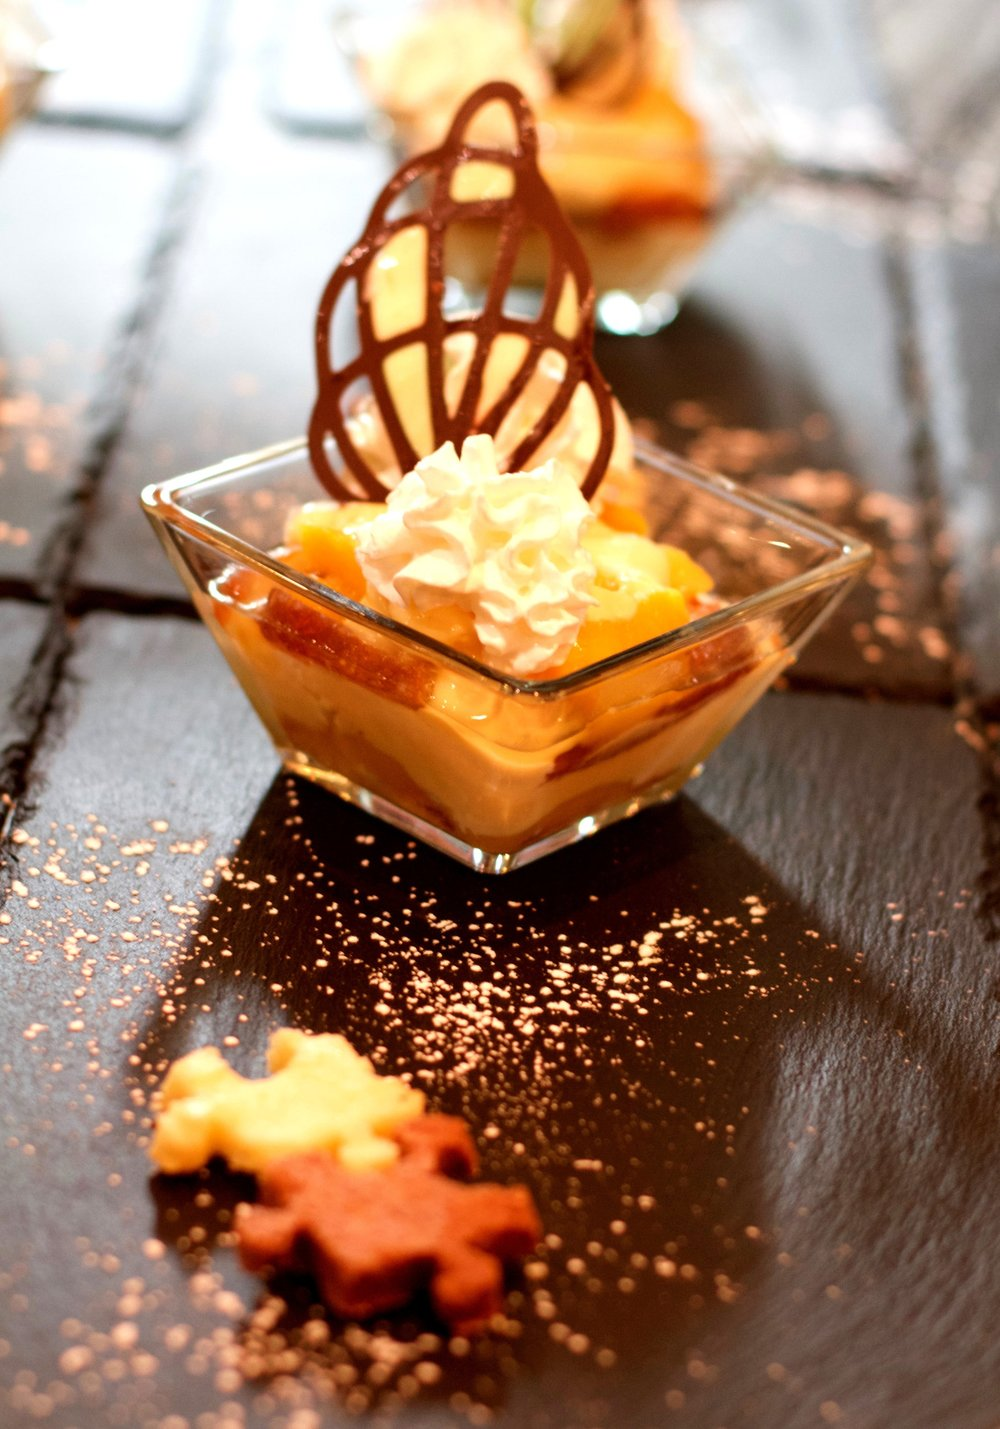 Mango triffle with cream, chocolate ganache and jigzaw puzzle biscuits.